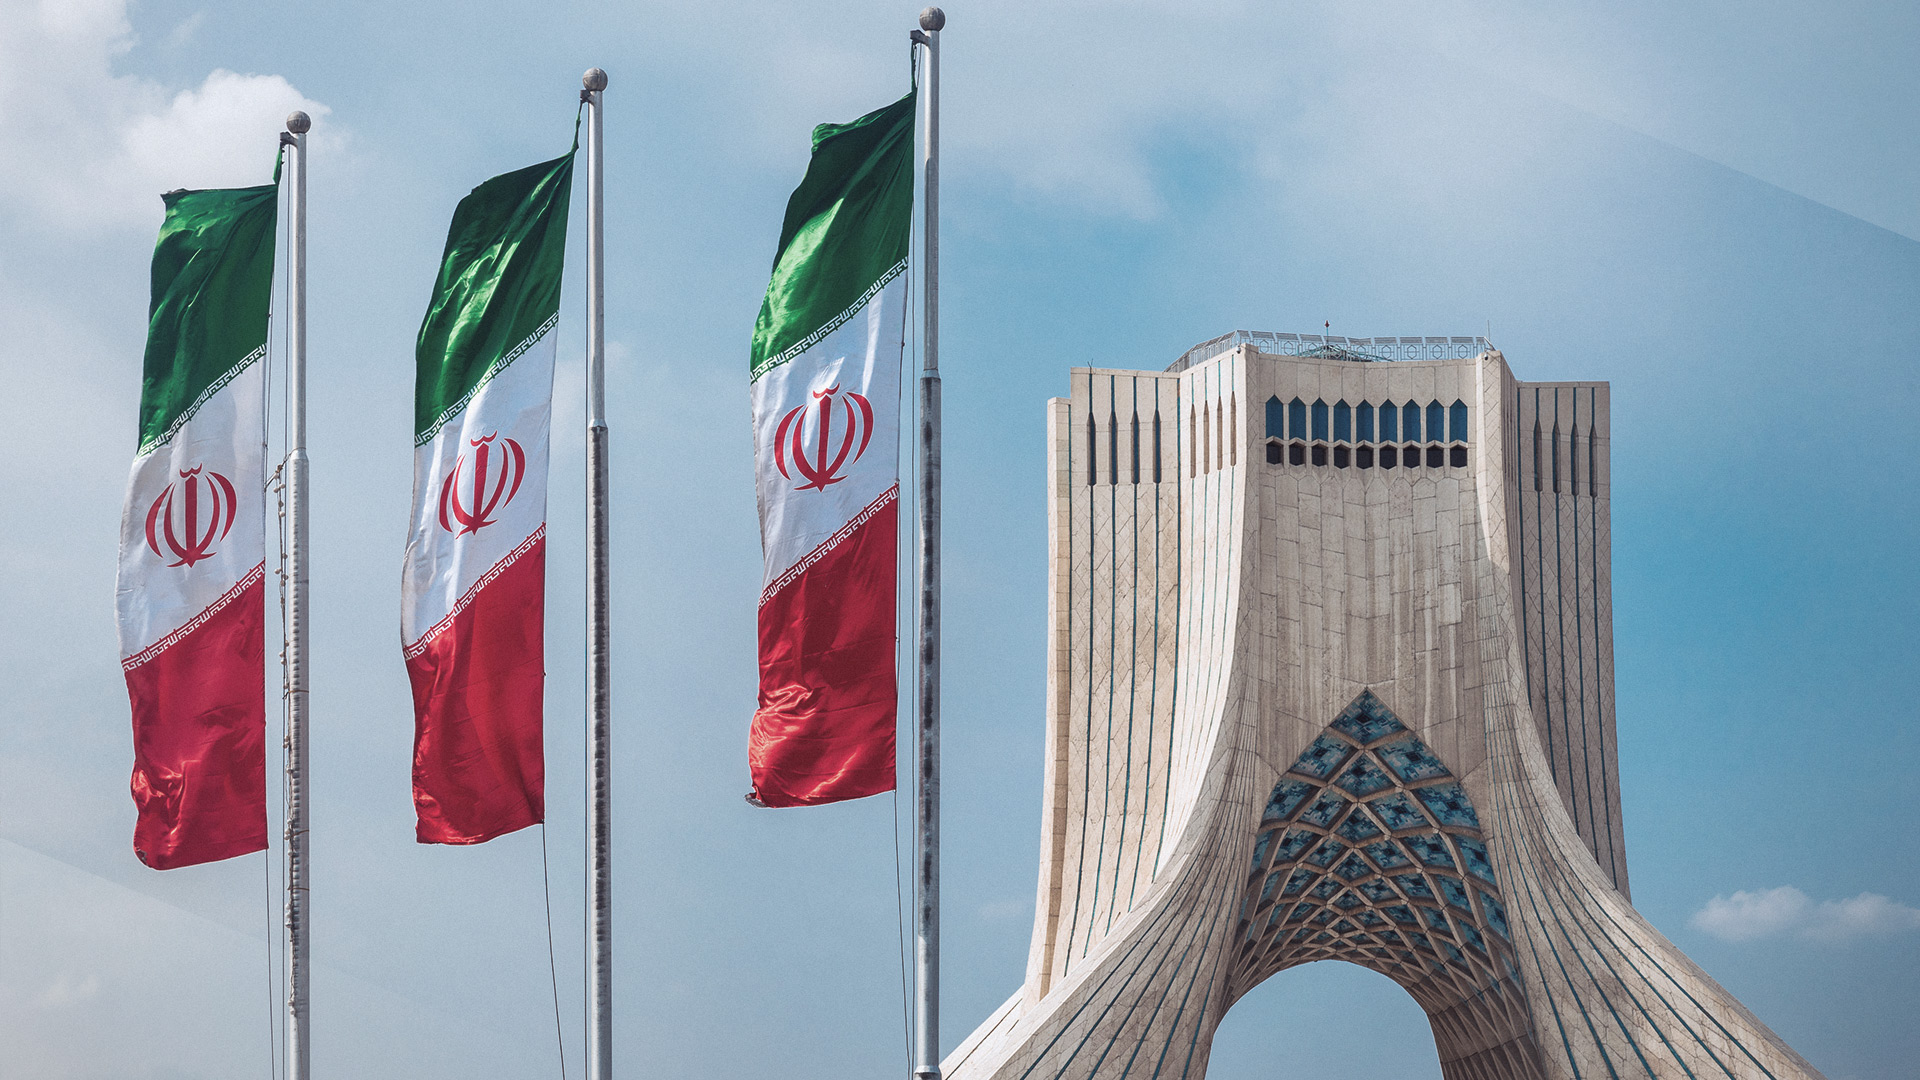 Iran authorities seize 7,000 crypto miners in largest haul to date